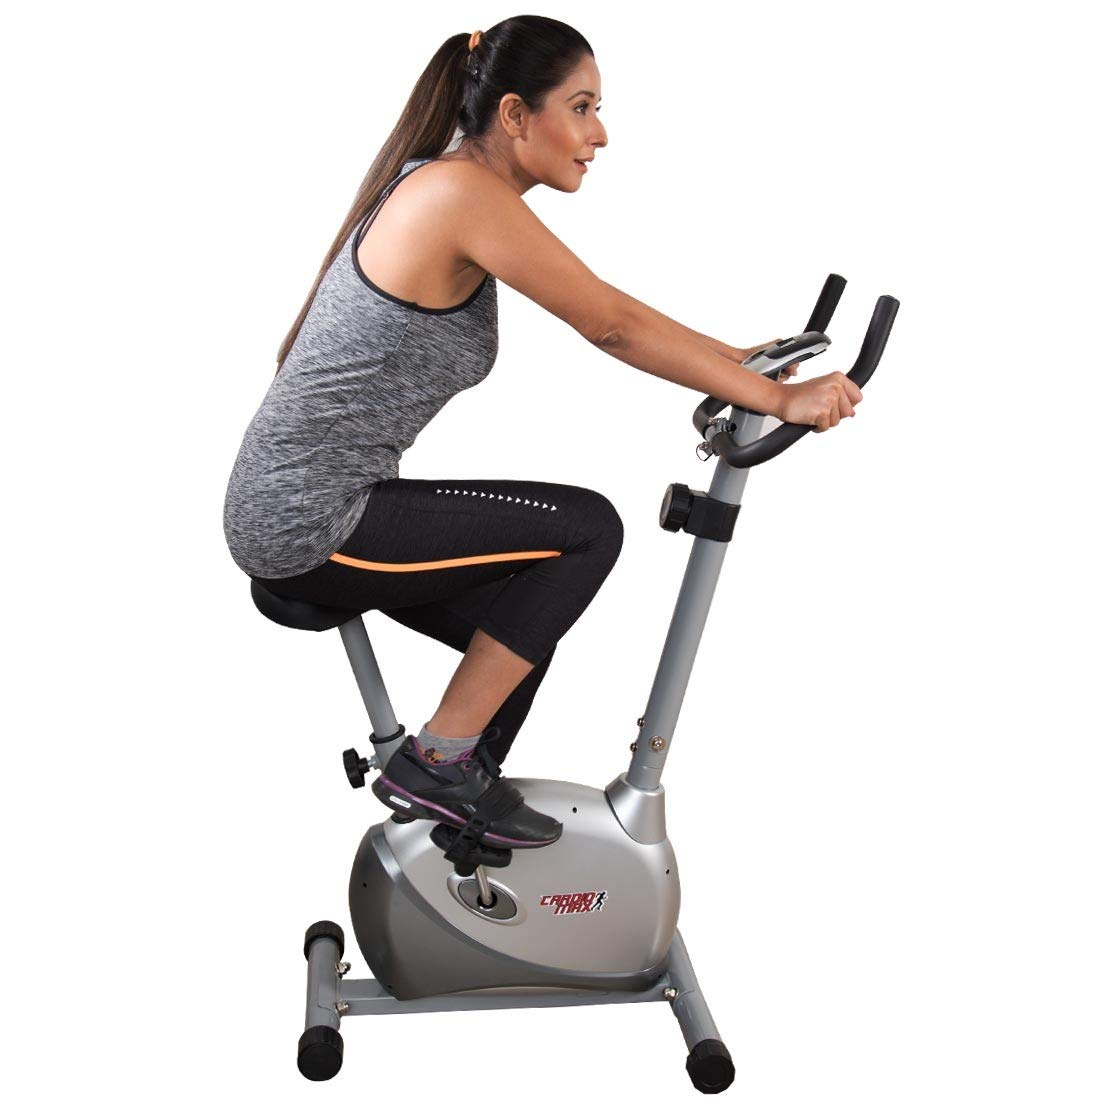 Cardio Max JSB HF73 Magnetic Exercise Cycle for Home Gym